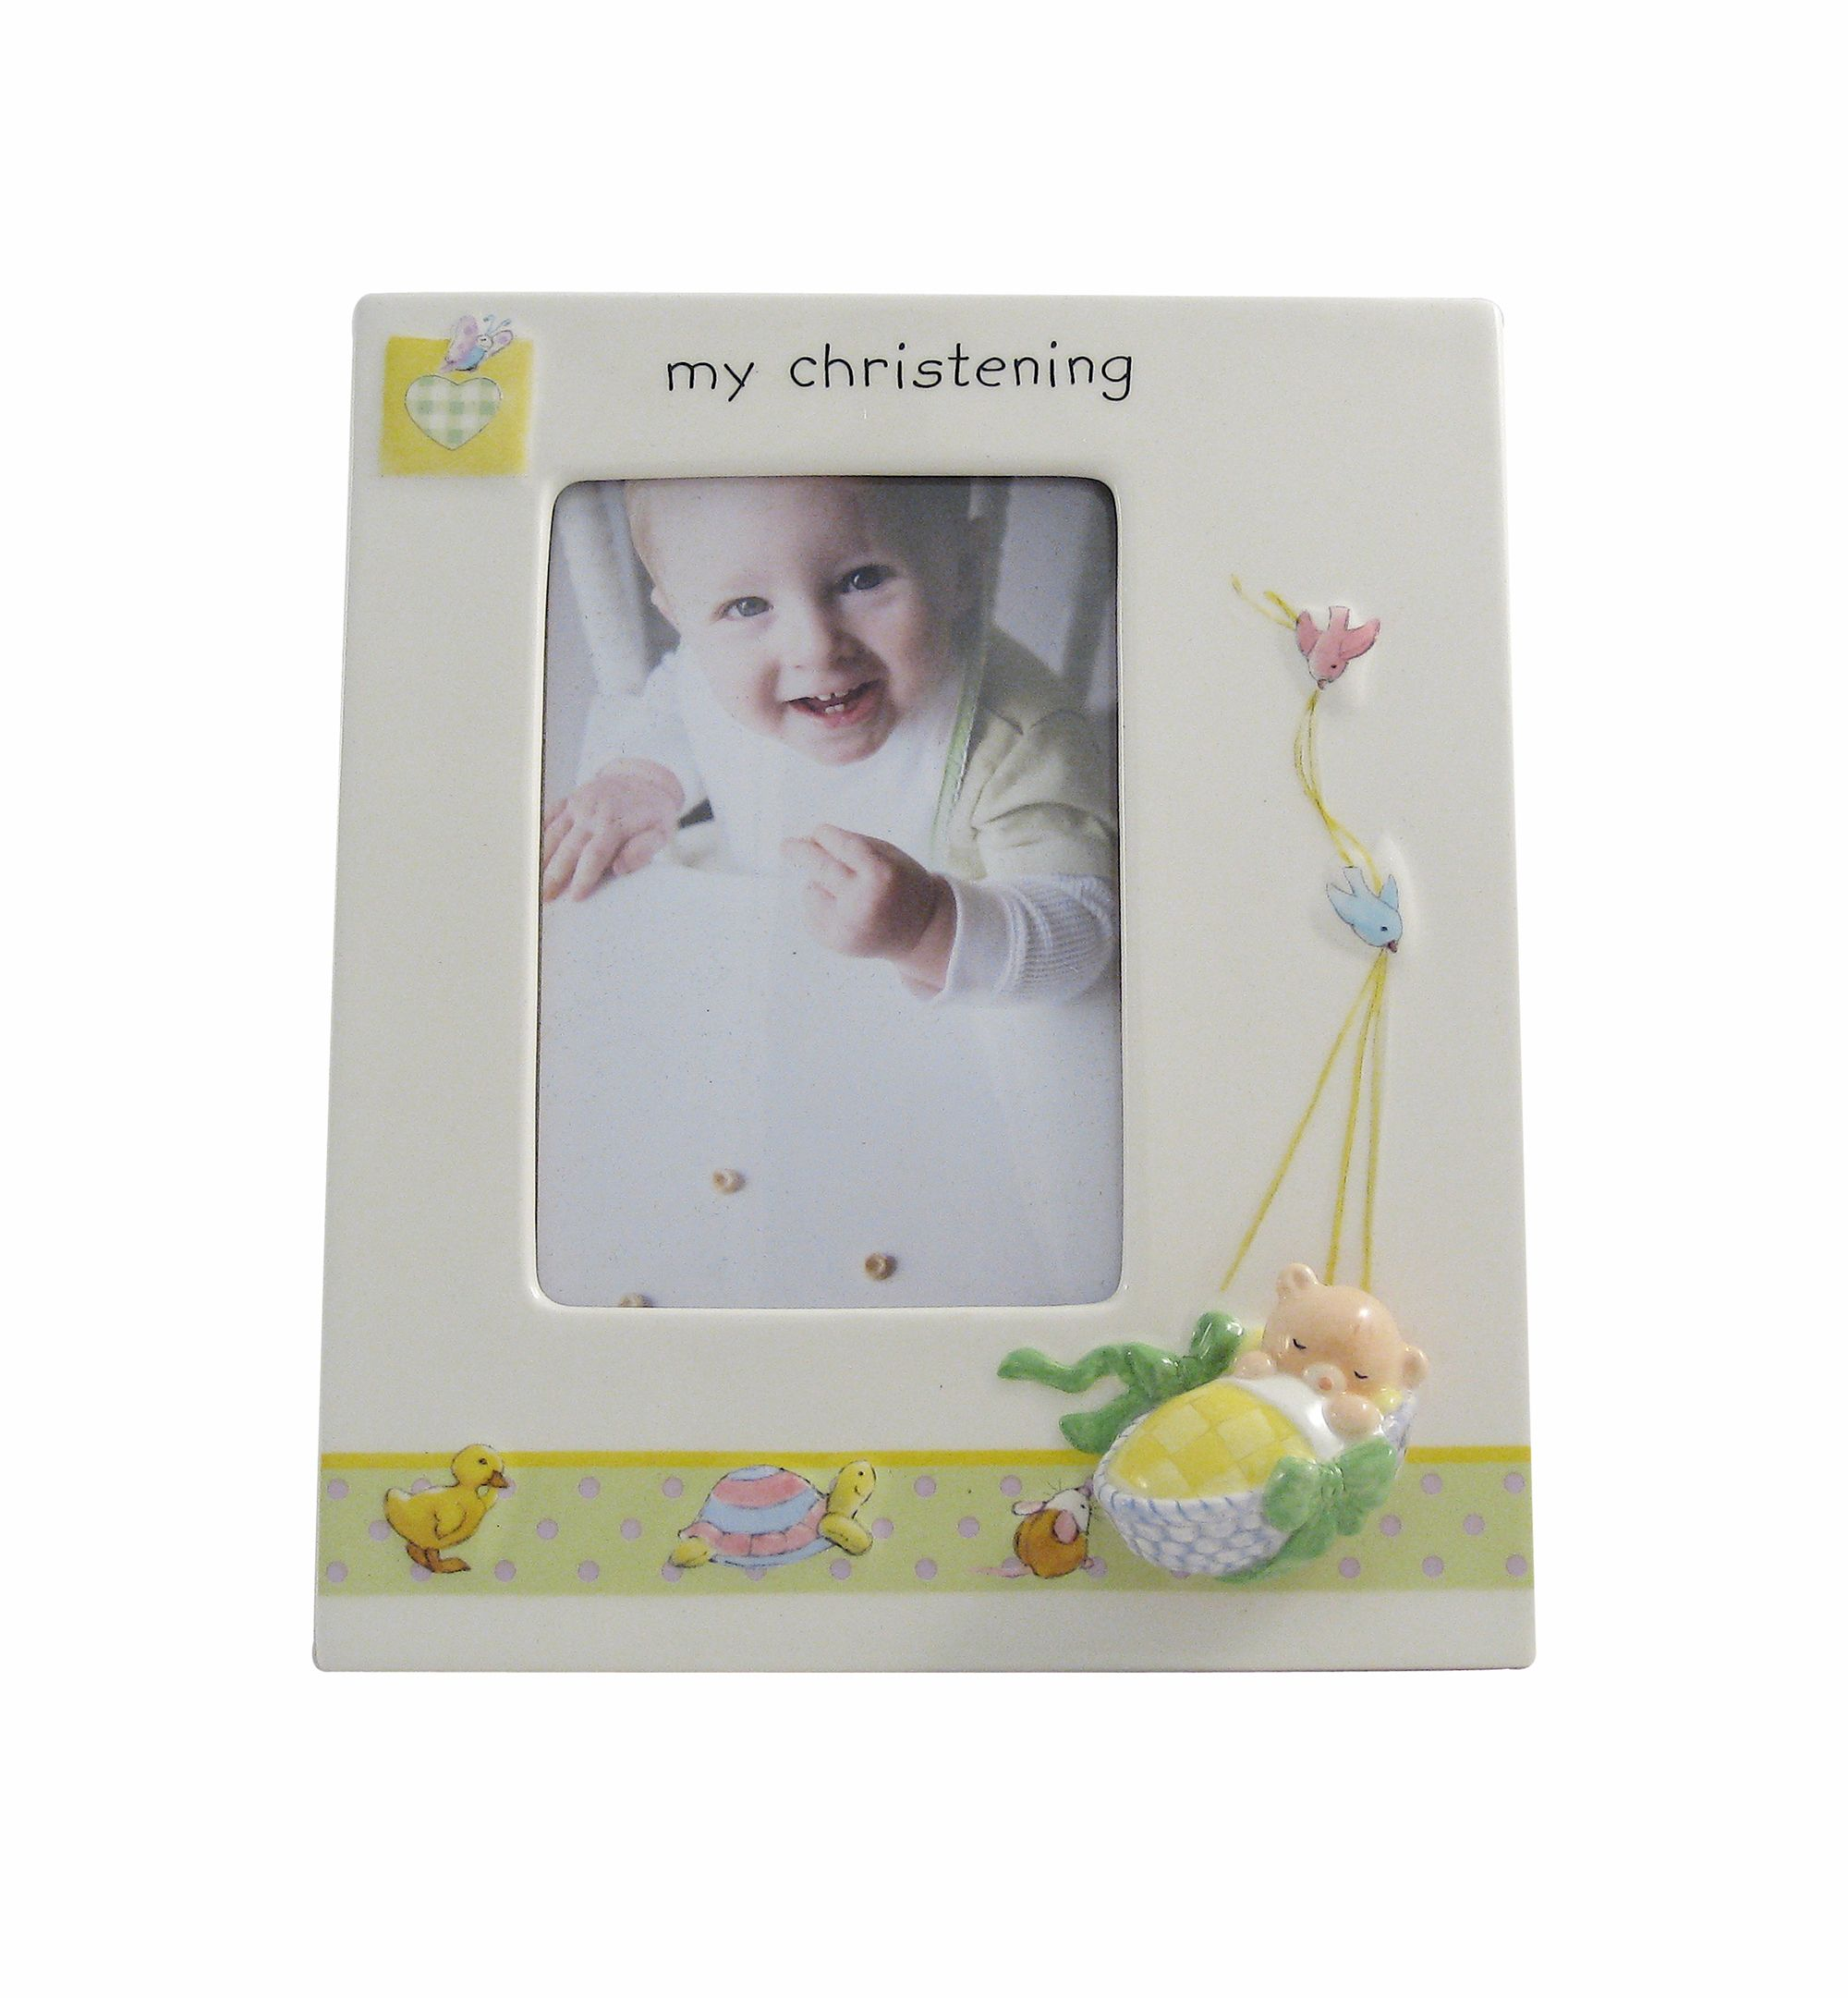 My christening photoframe